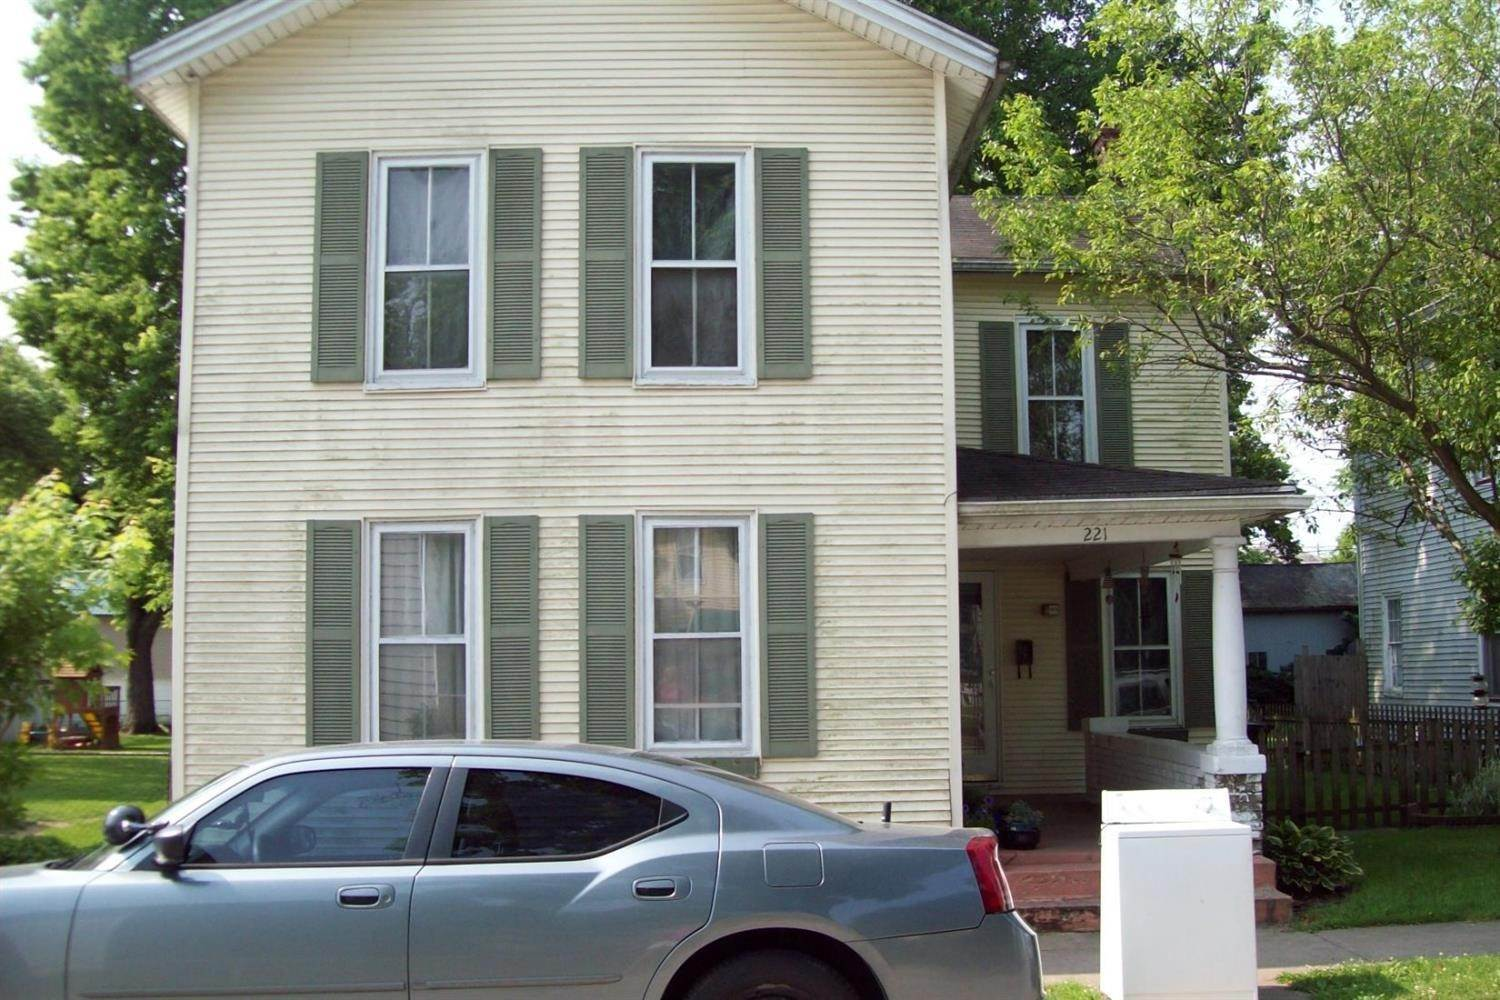 Single Family Homes for Sale at 221 E Center Street Germantown, Ohio 45327 United States